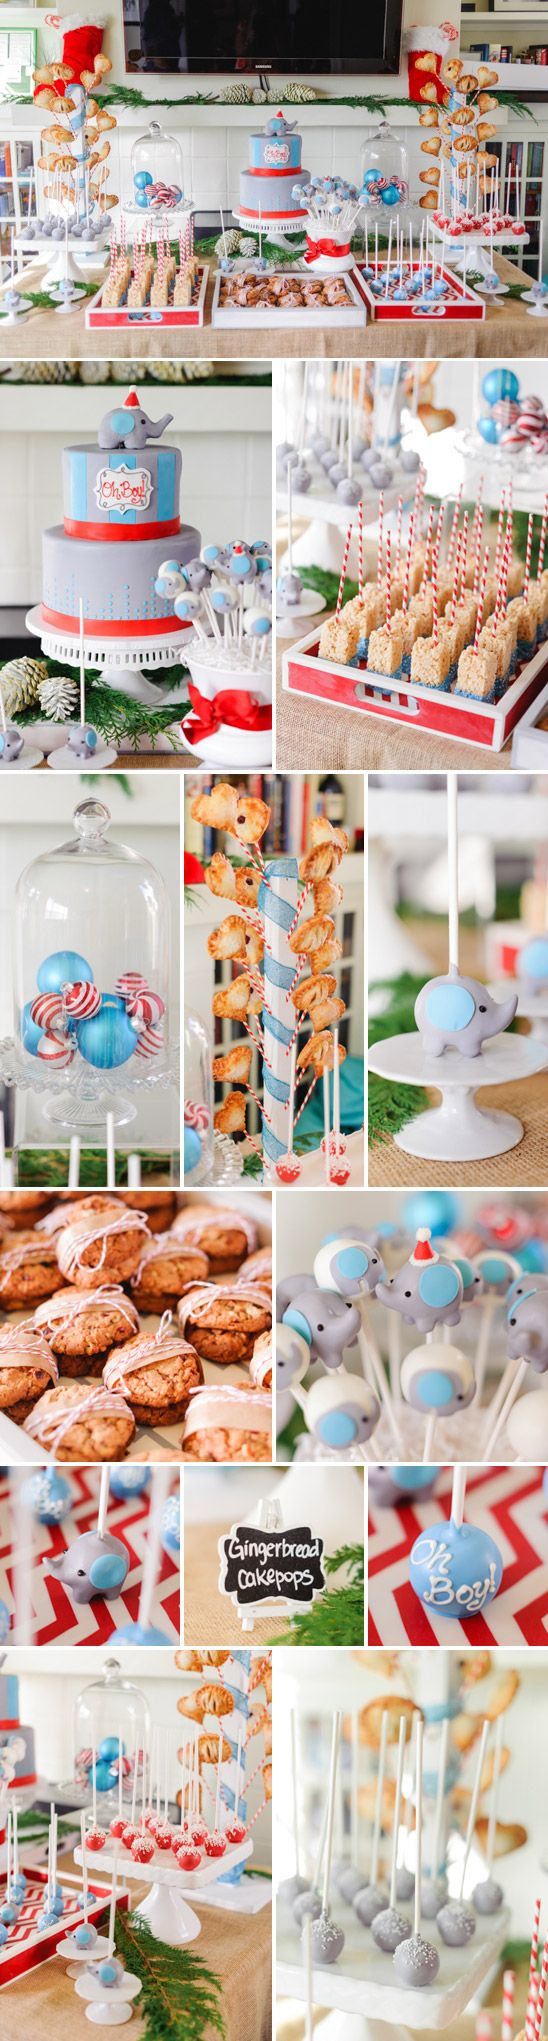 Sweet Winter Elephant Themed Baby Shower: rice krispie squares dipped in blue colored melting candies with a paper straw.